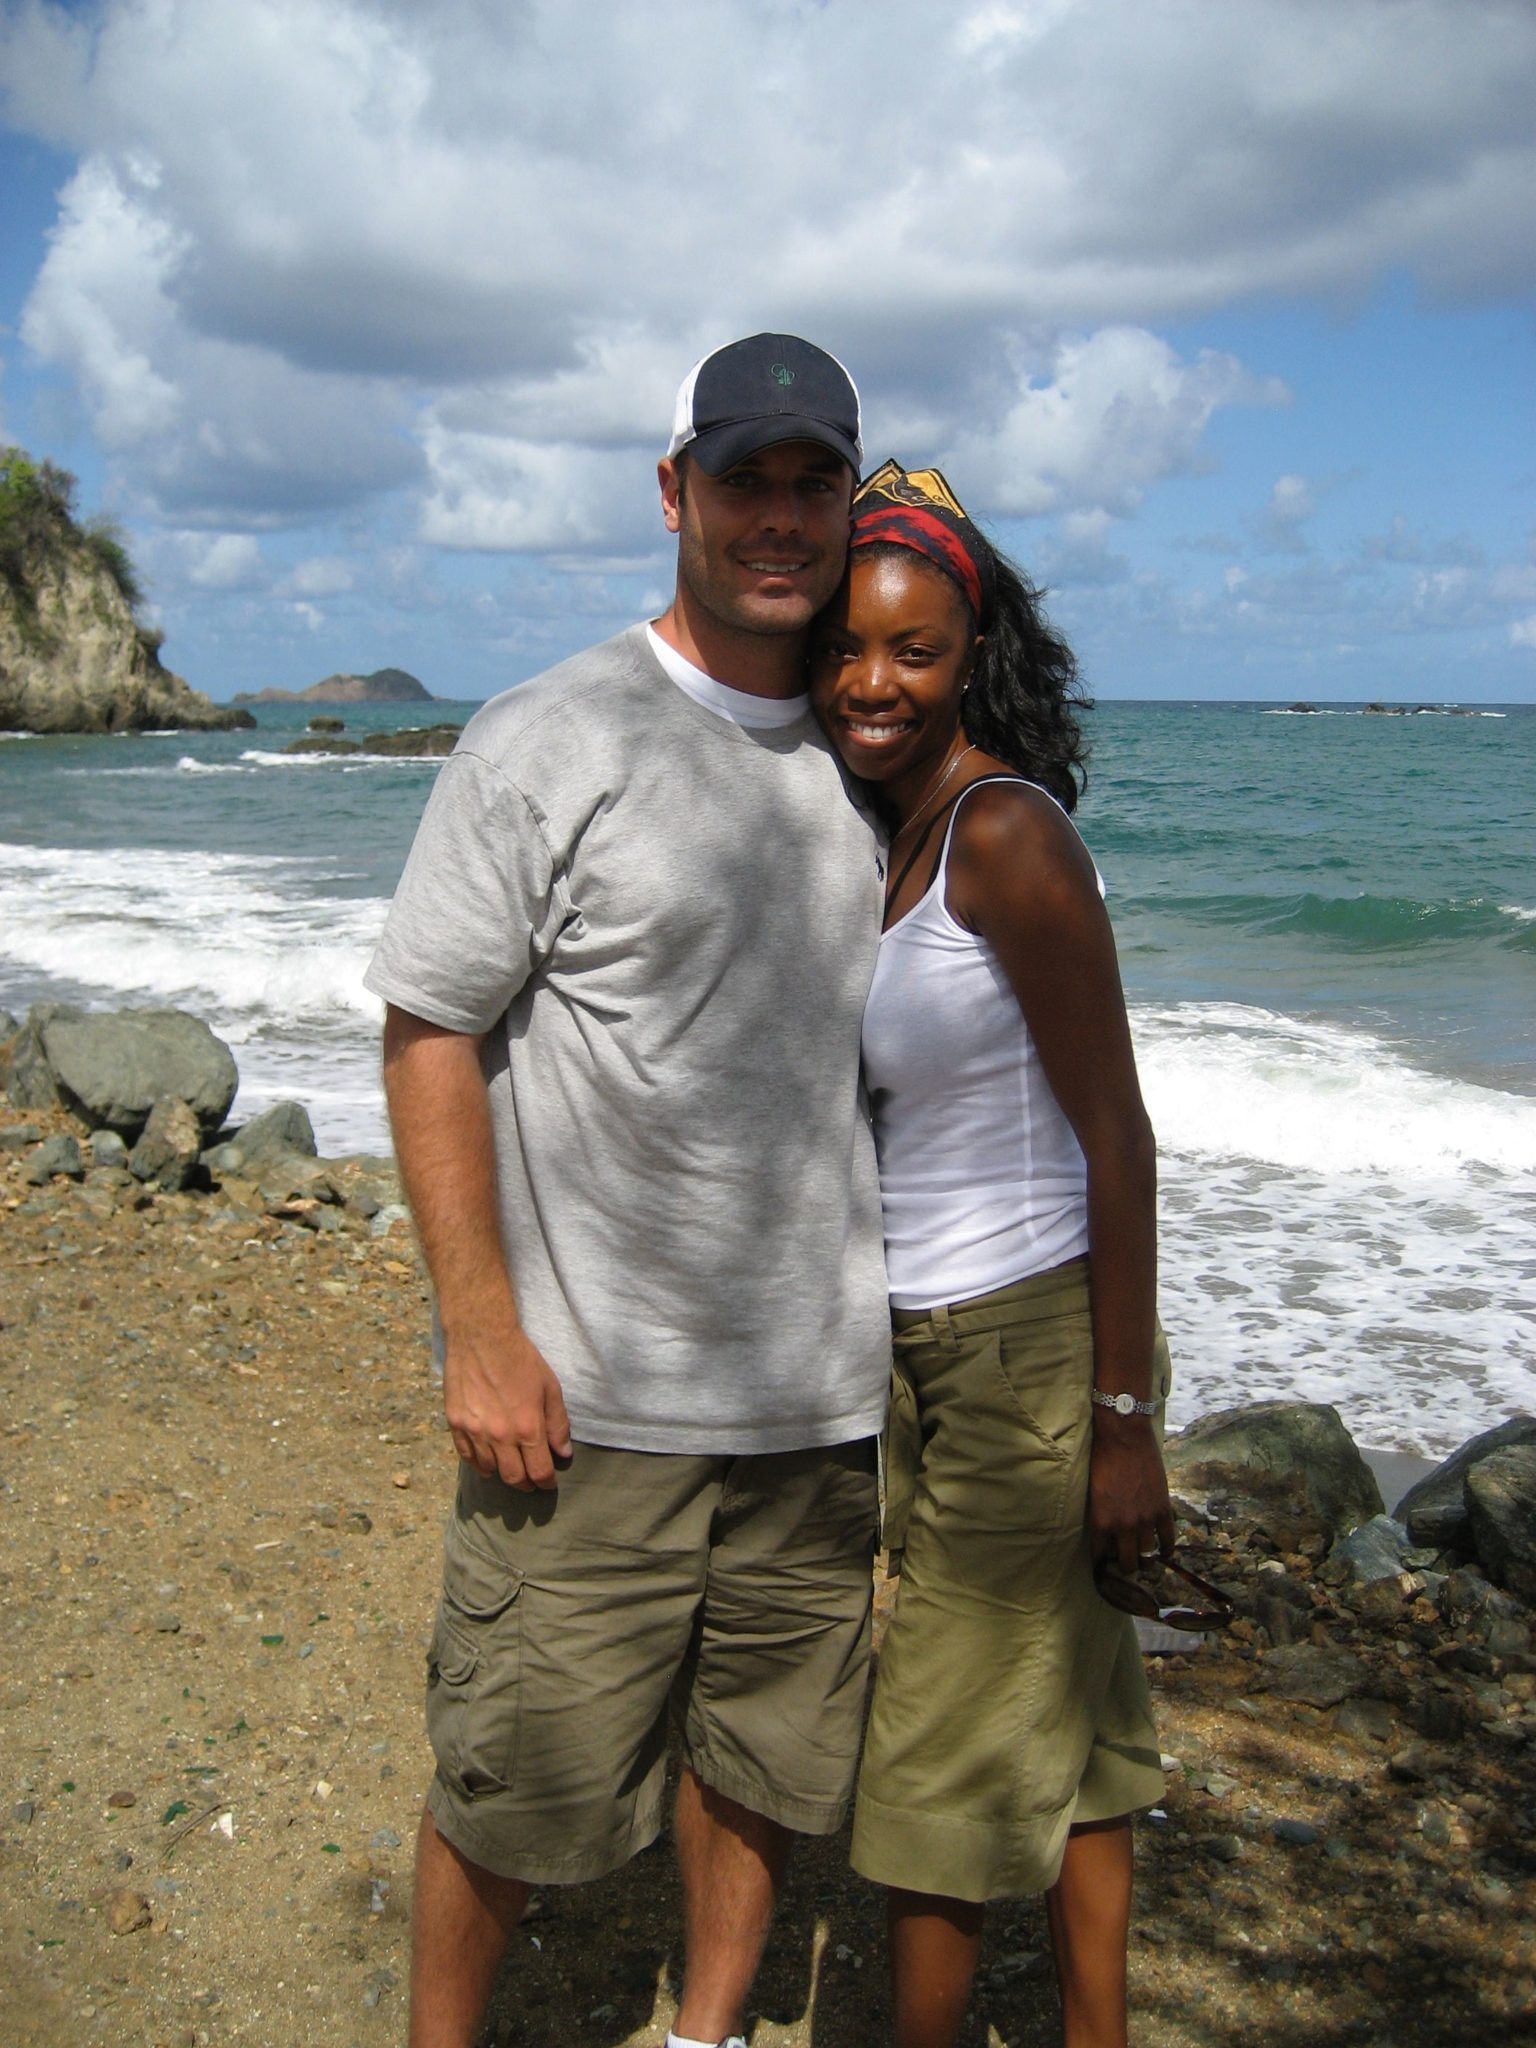 Headley and husband Brian in Tobago. Photograph courtesy Heather Headley